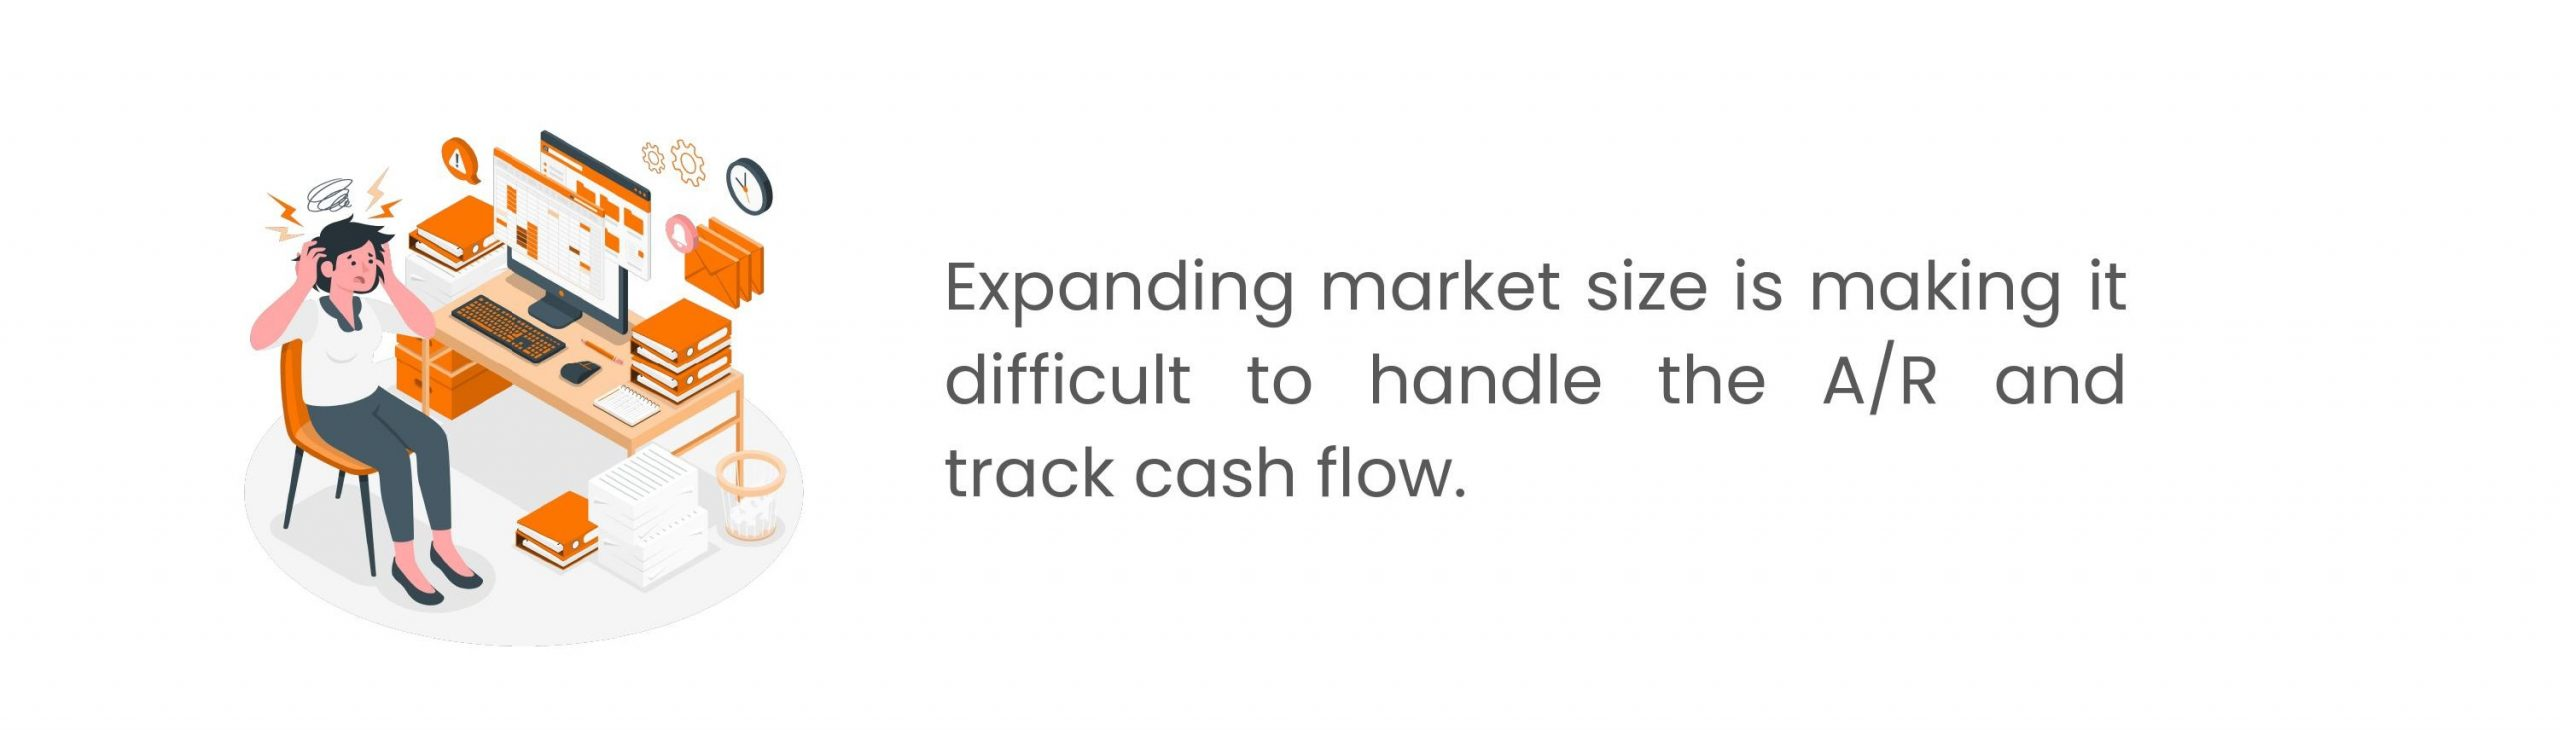 Challenges Faced by Mid-Market in Maintaining a Steady Cash Flow